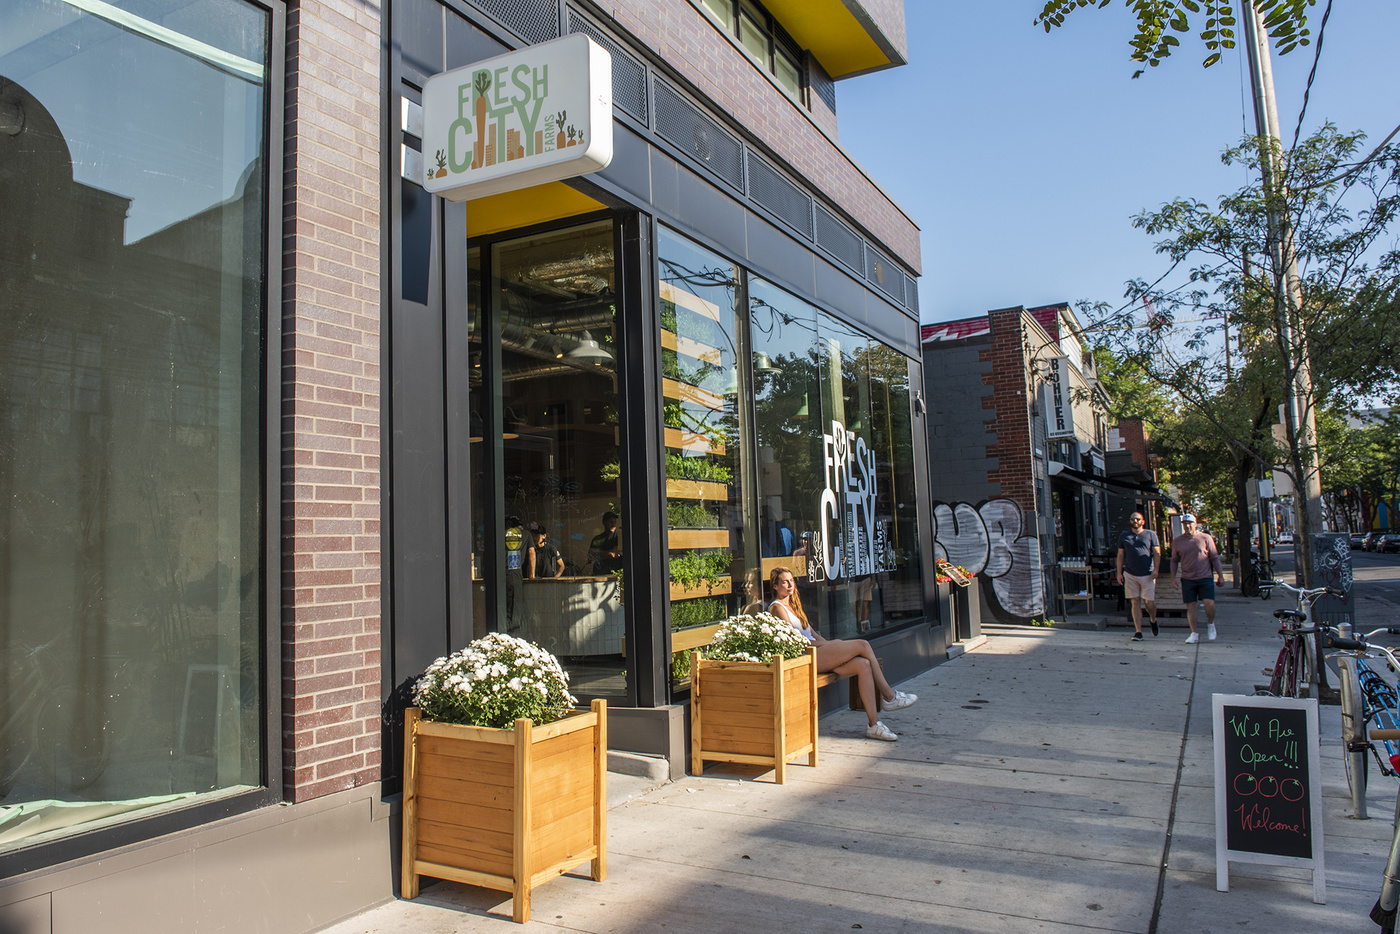 fresh city farms toronto